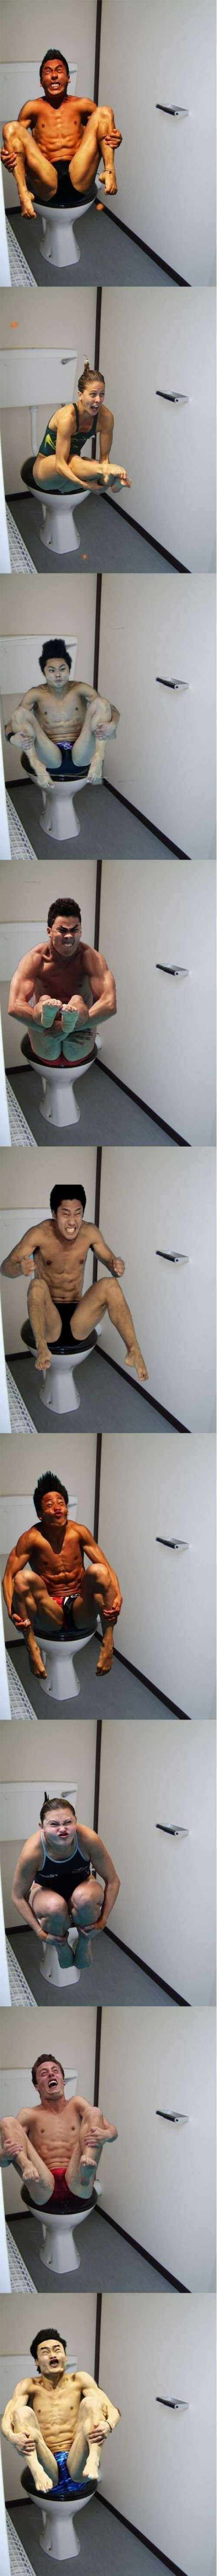 Olympic divers photoshopped on to toilets.  Dying of laughter oh my gosh...